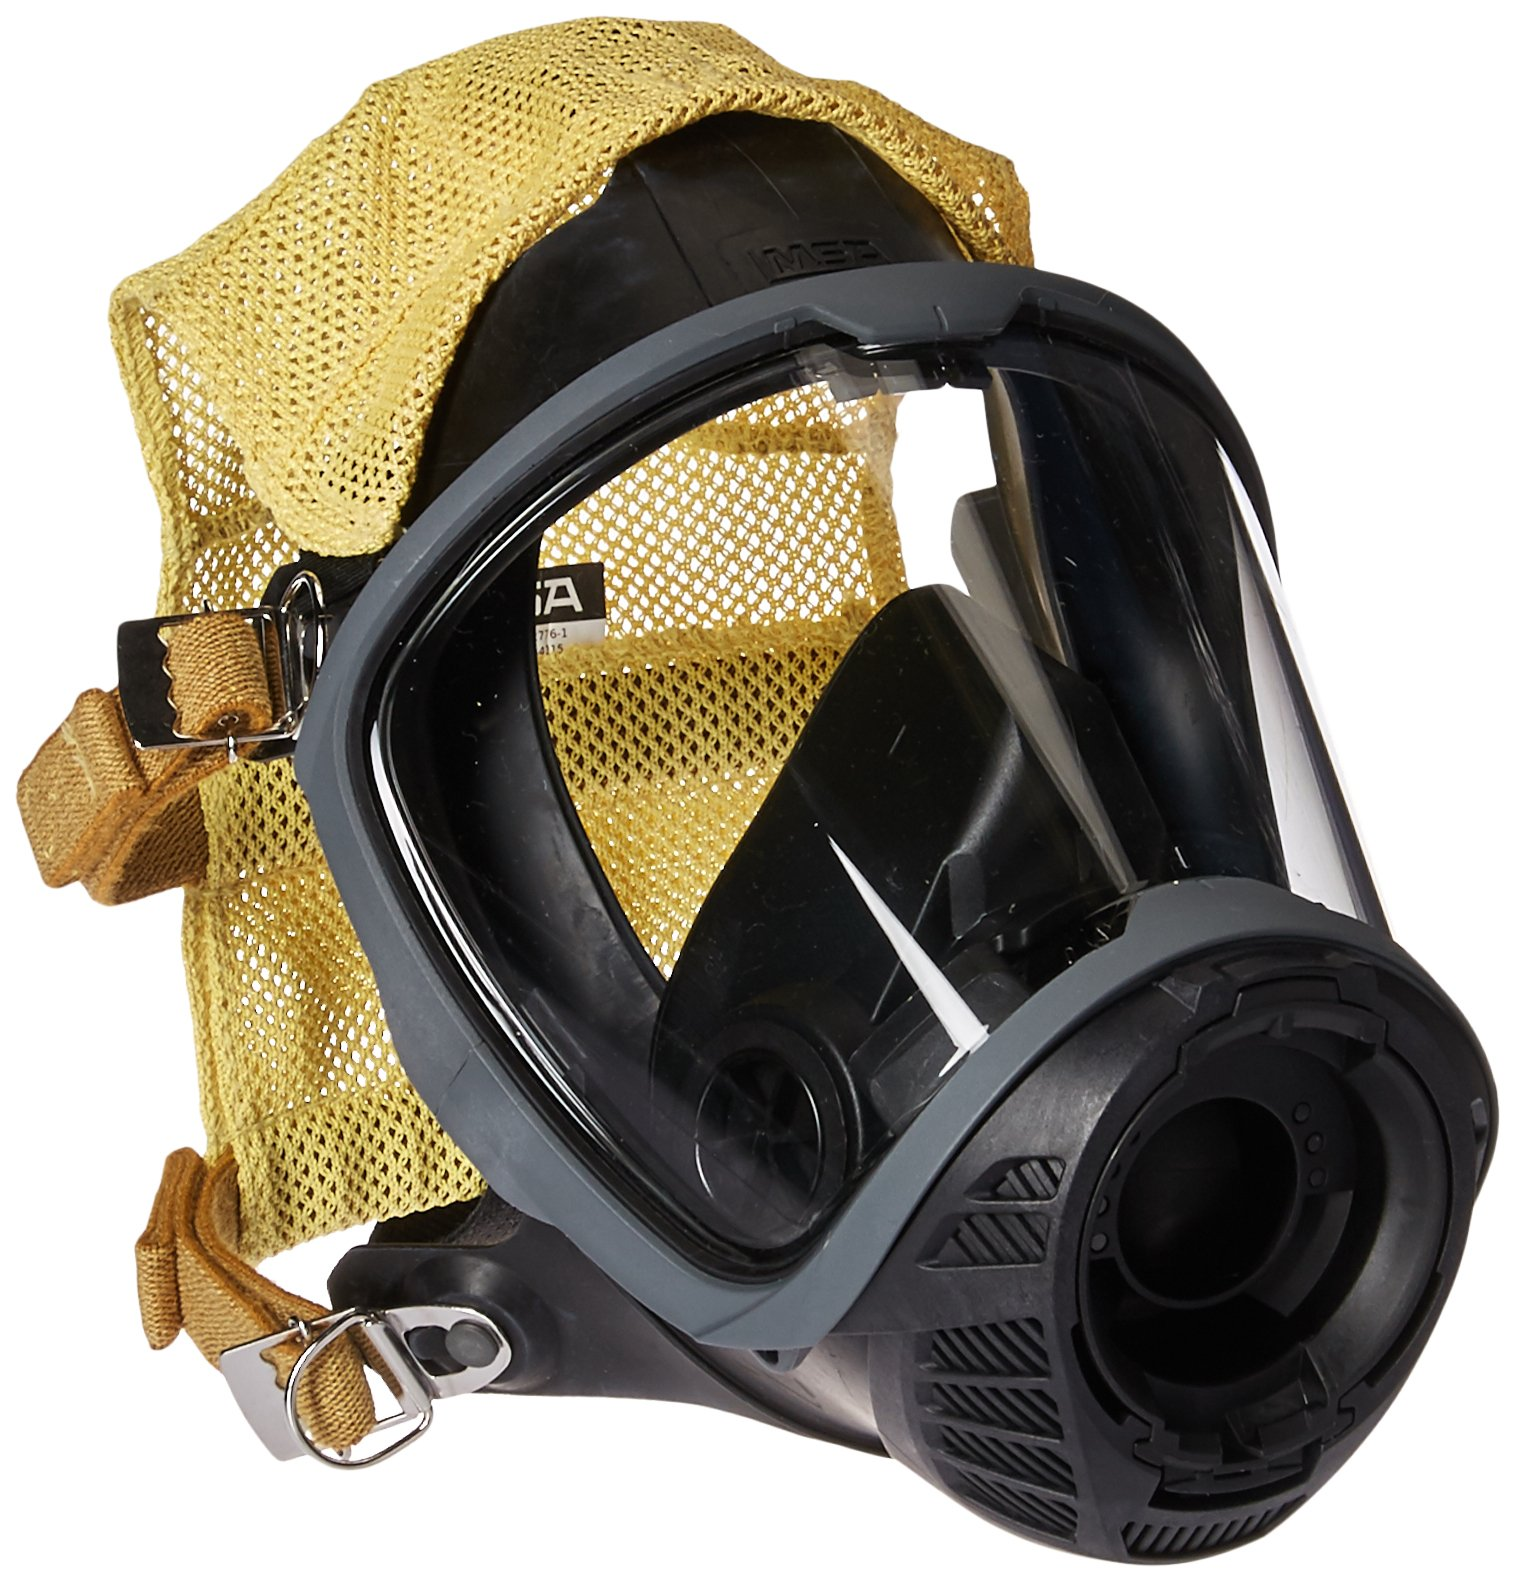 MSA Safety 10156460 Facepiece, G1, Fire Service, Nose Cup with 4 Point Adjustable Cloth -Head Harness, Large